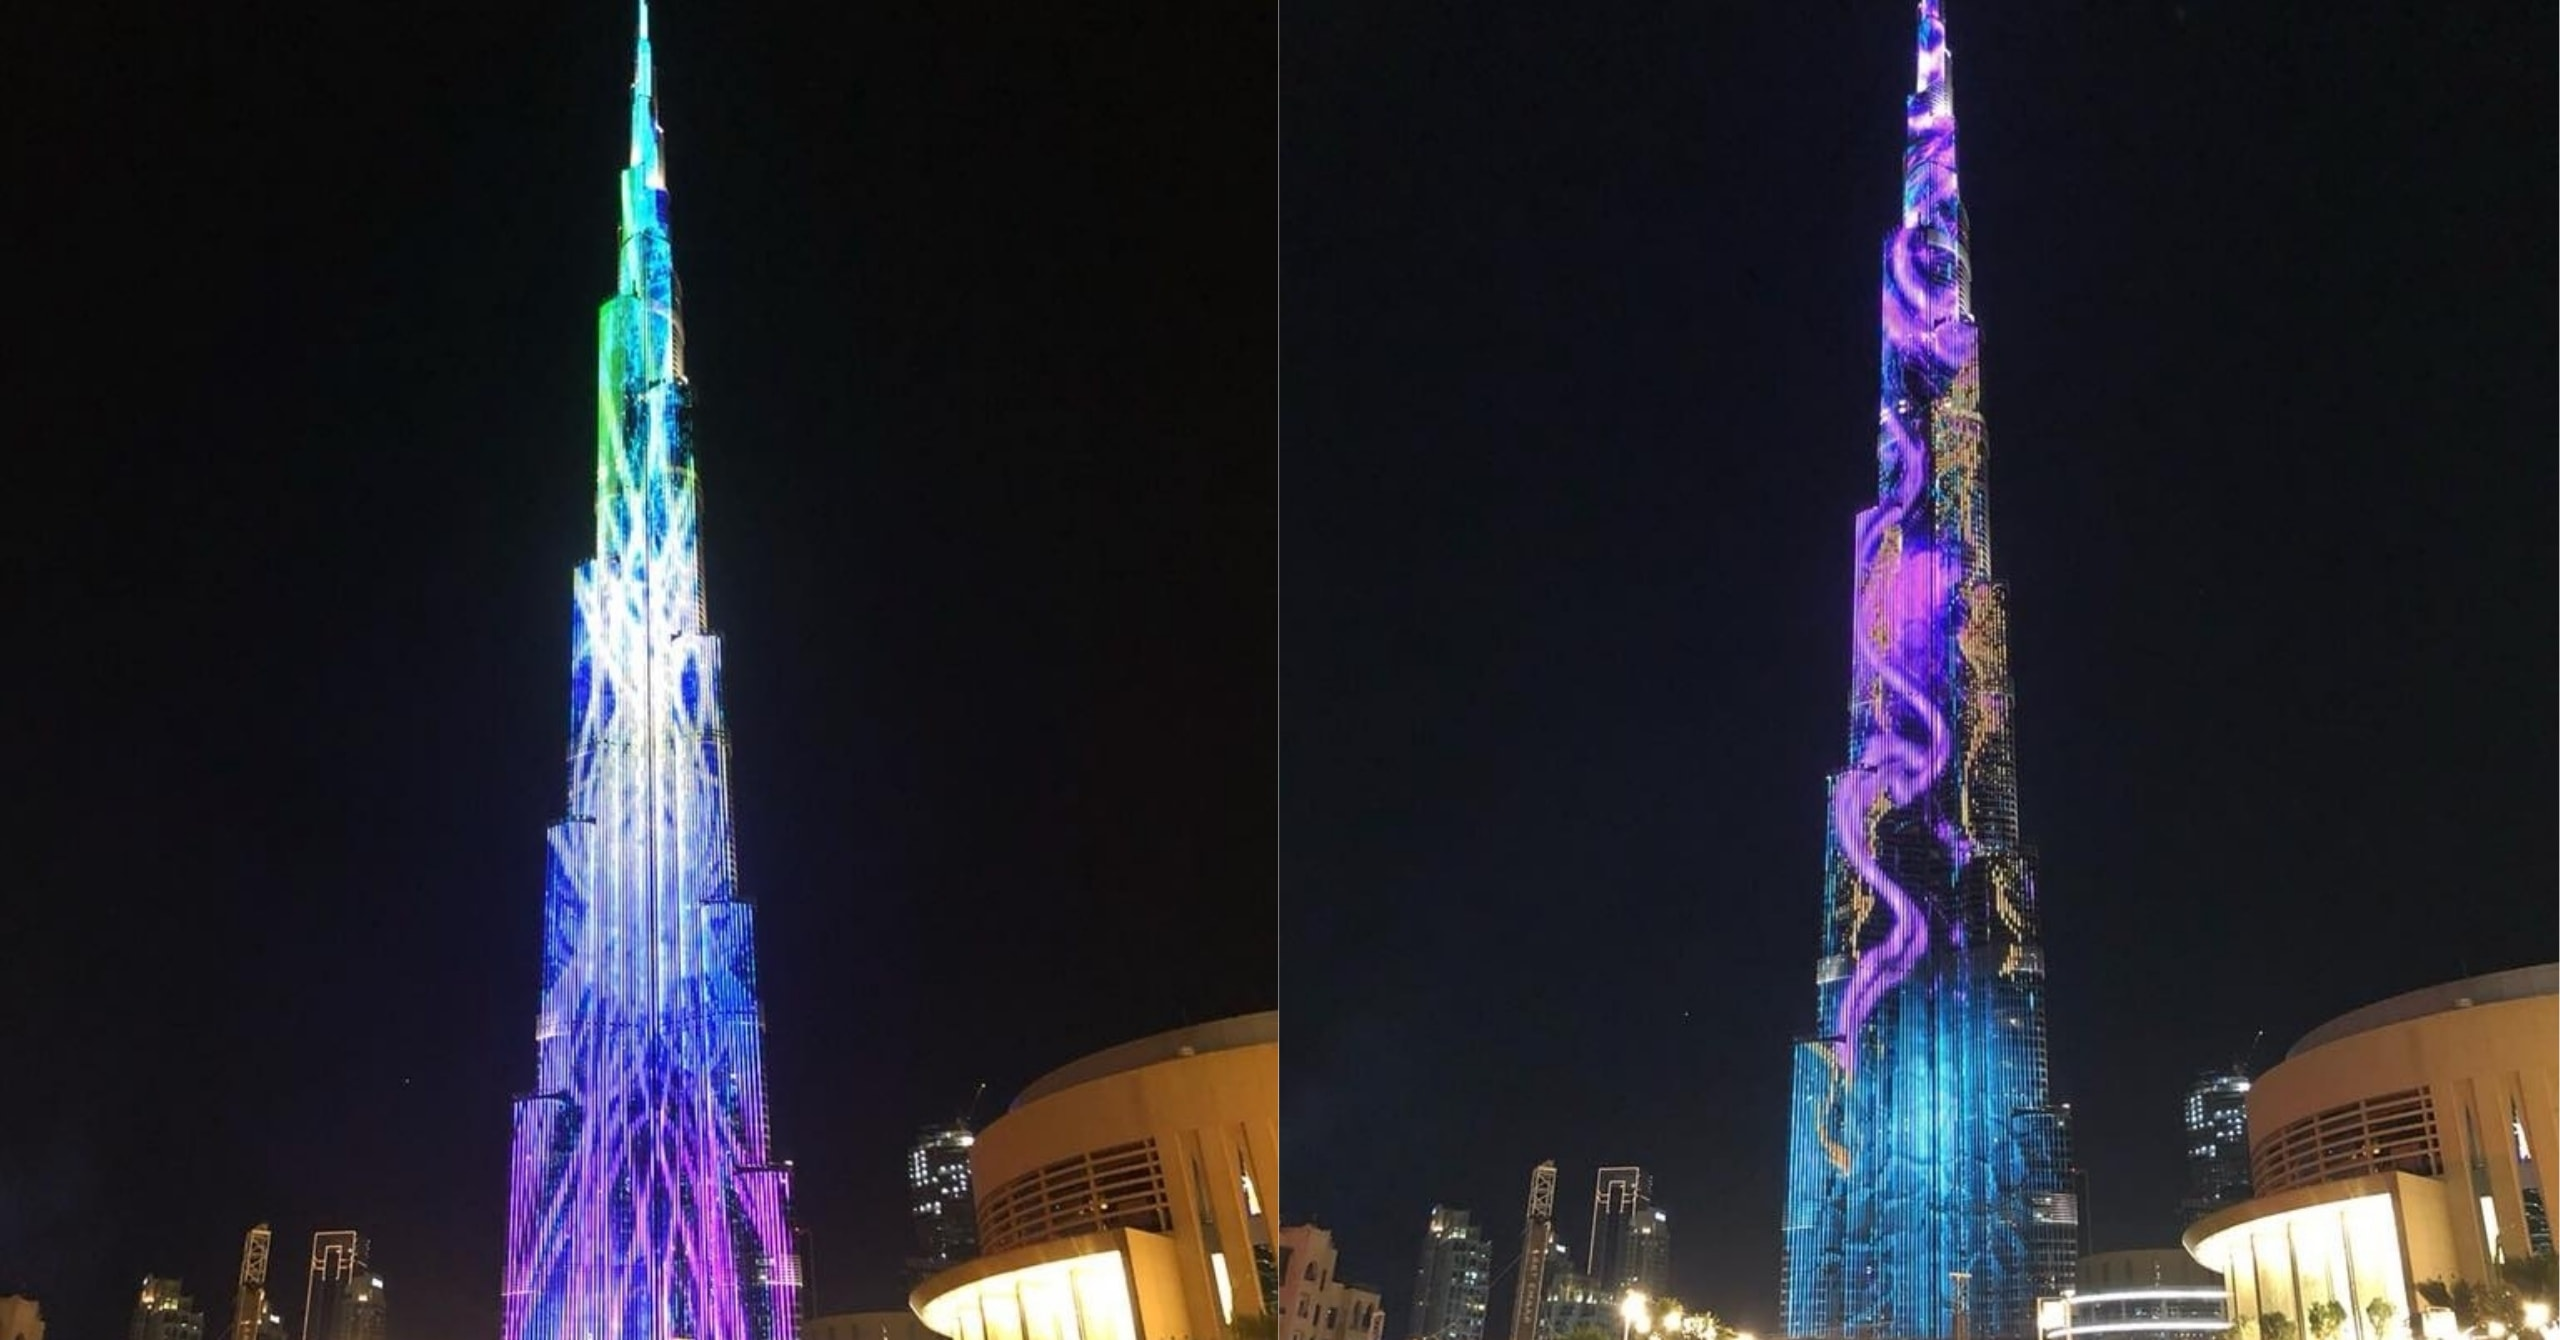 dubai-burj-khalifa-light-show